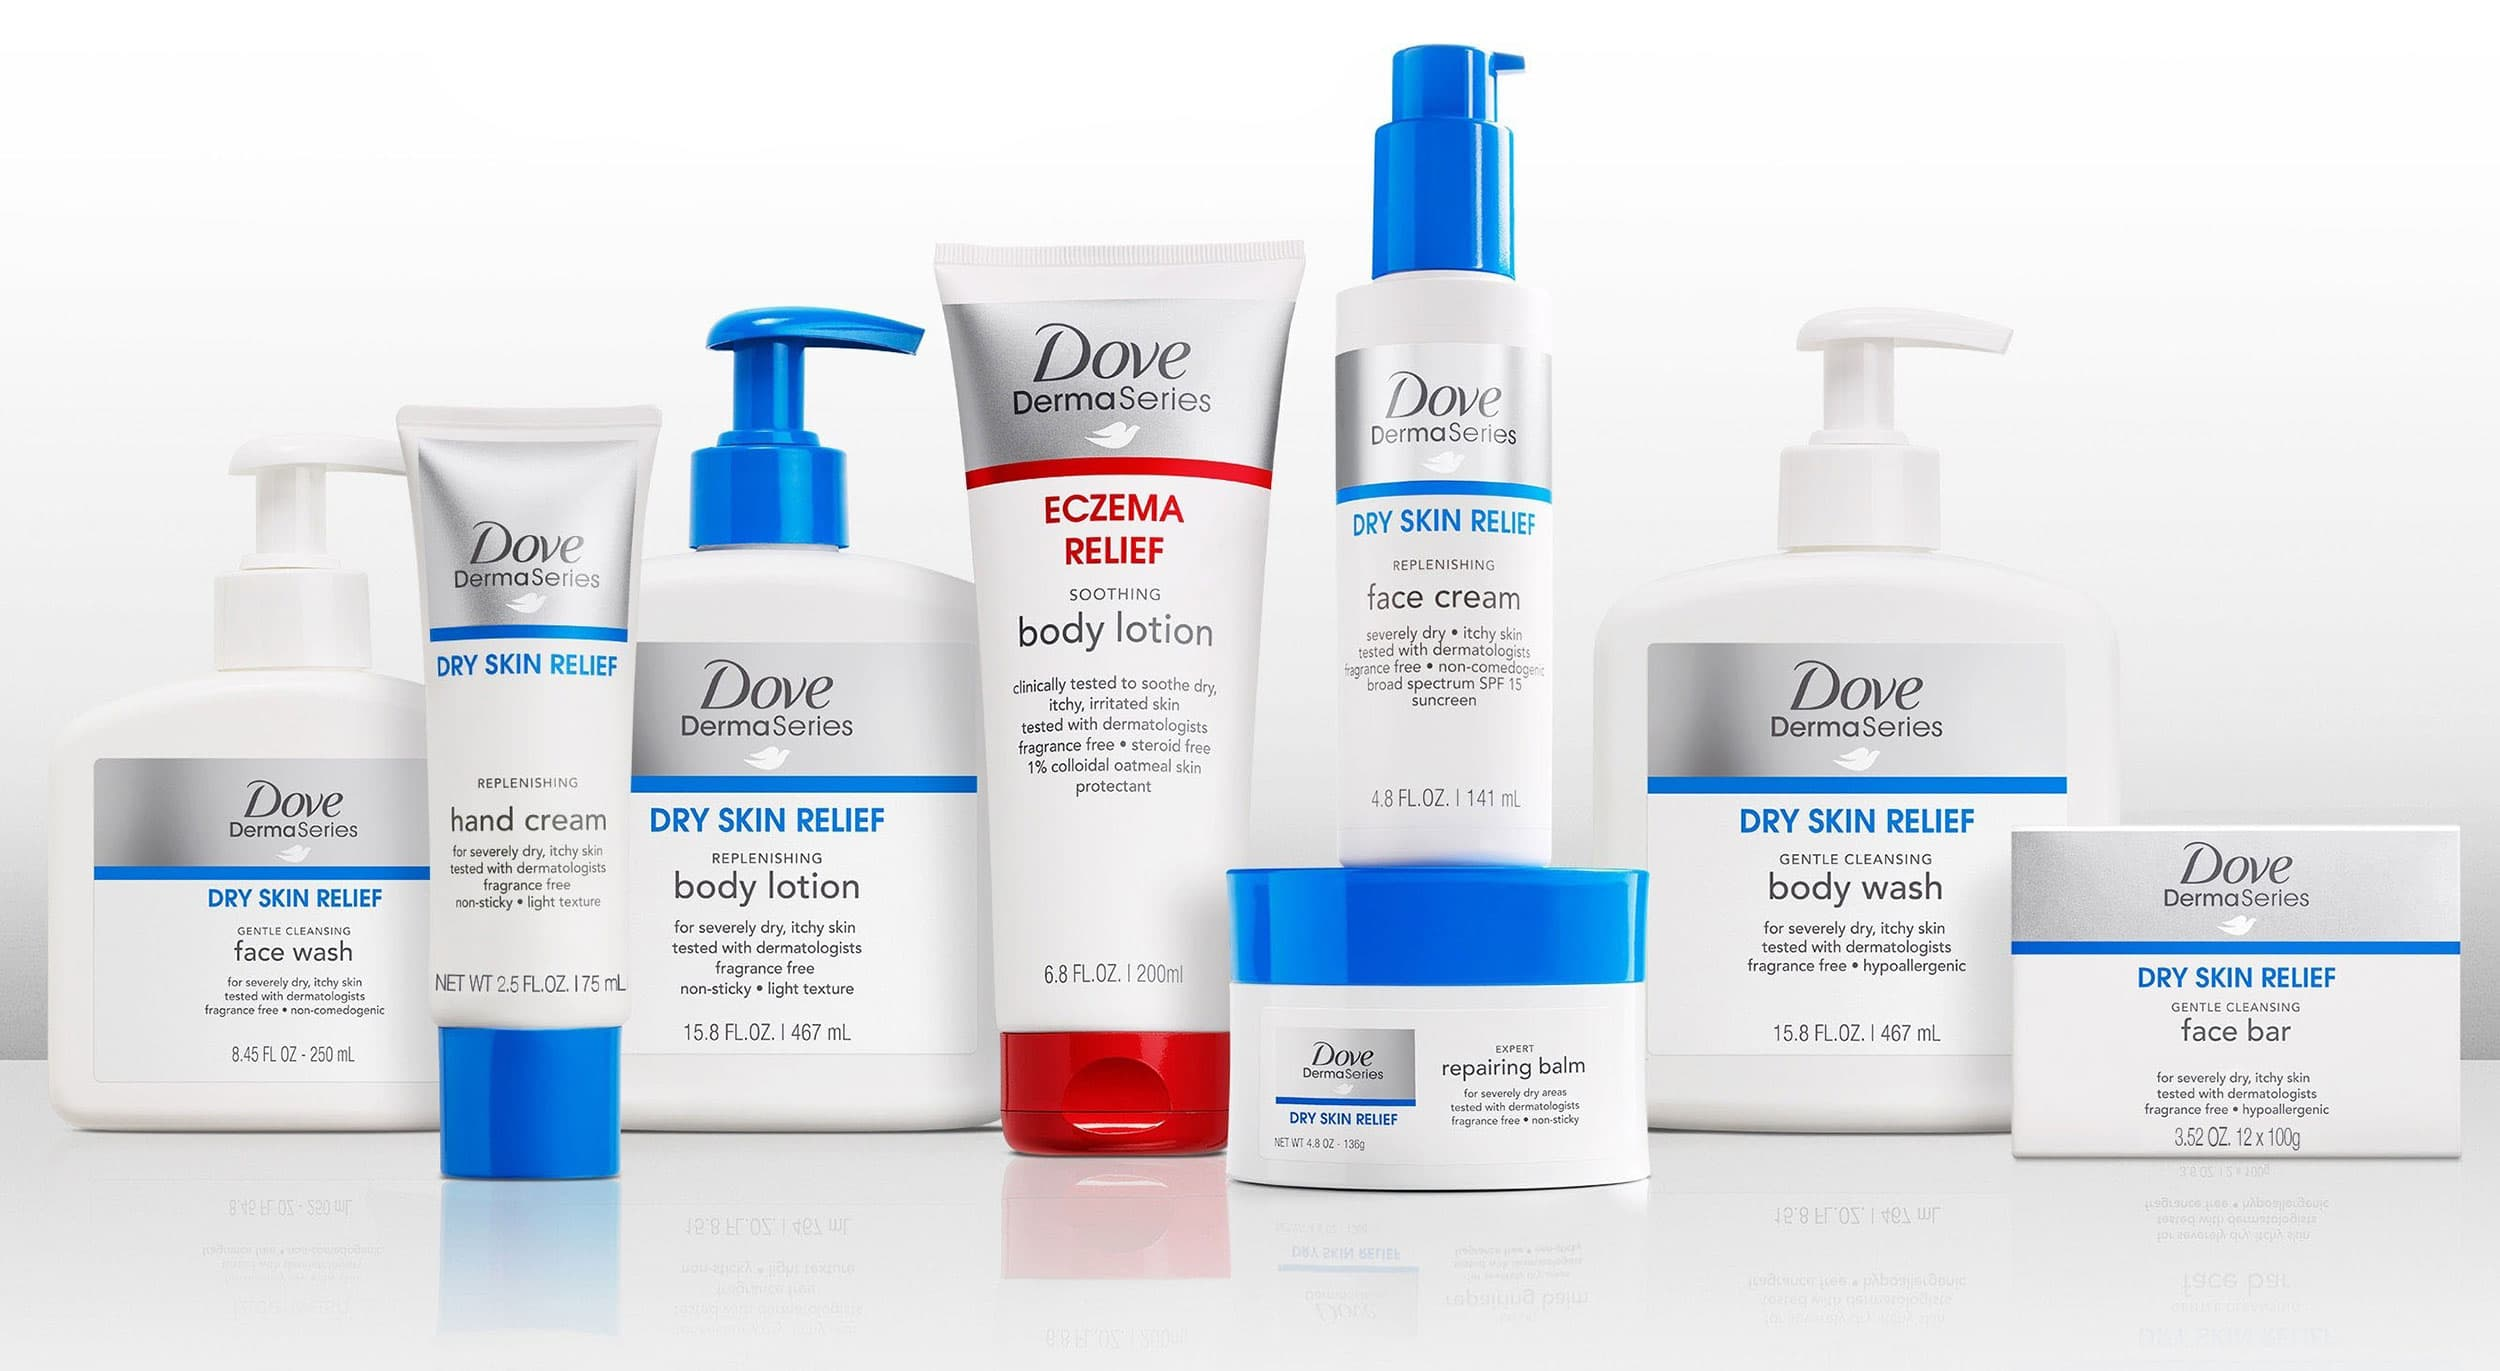 Unilever is leveraging one of its strongest personal care brands Dove to take on climate action.